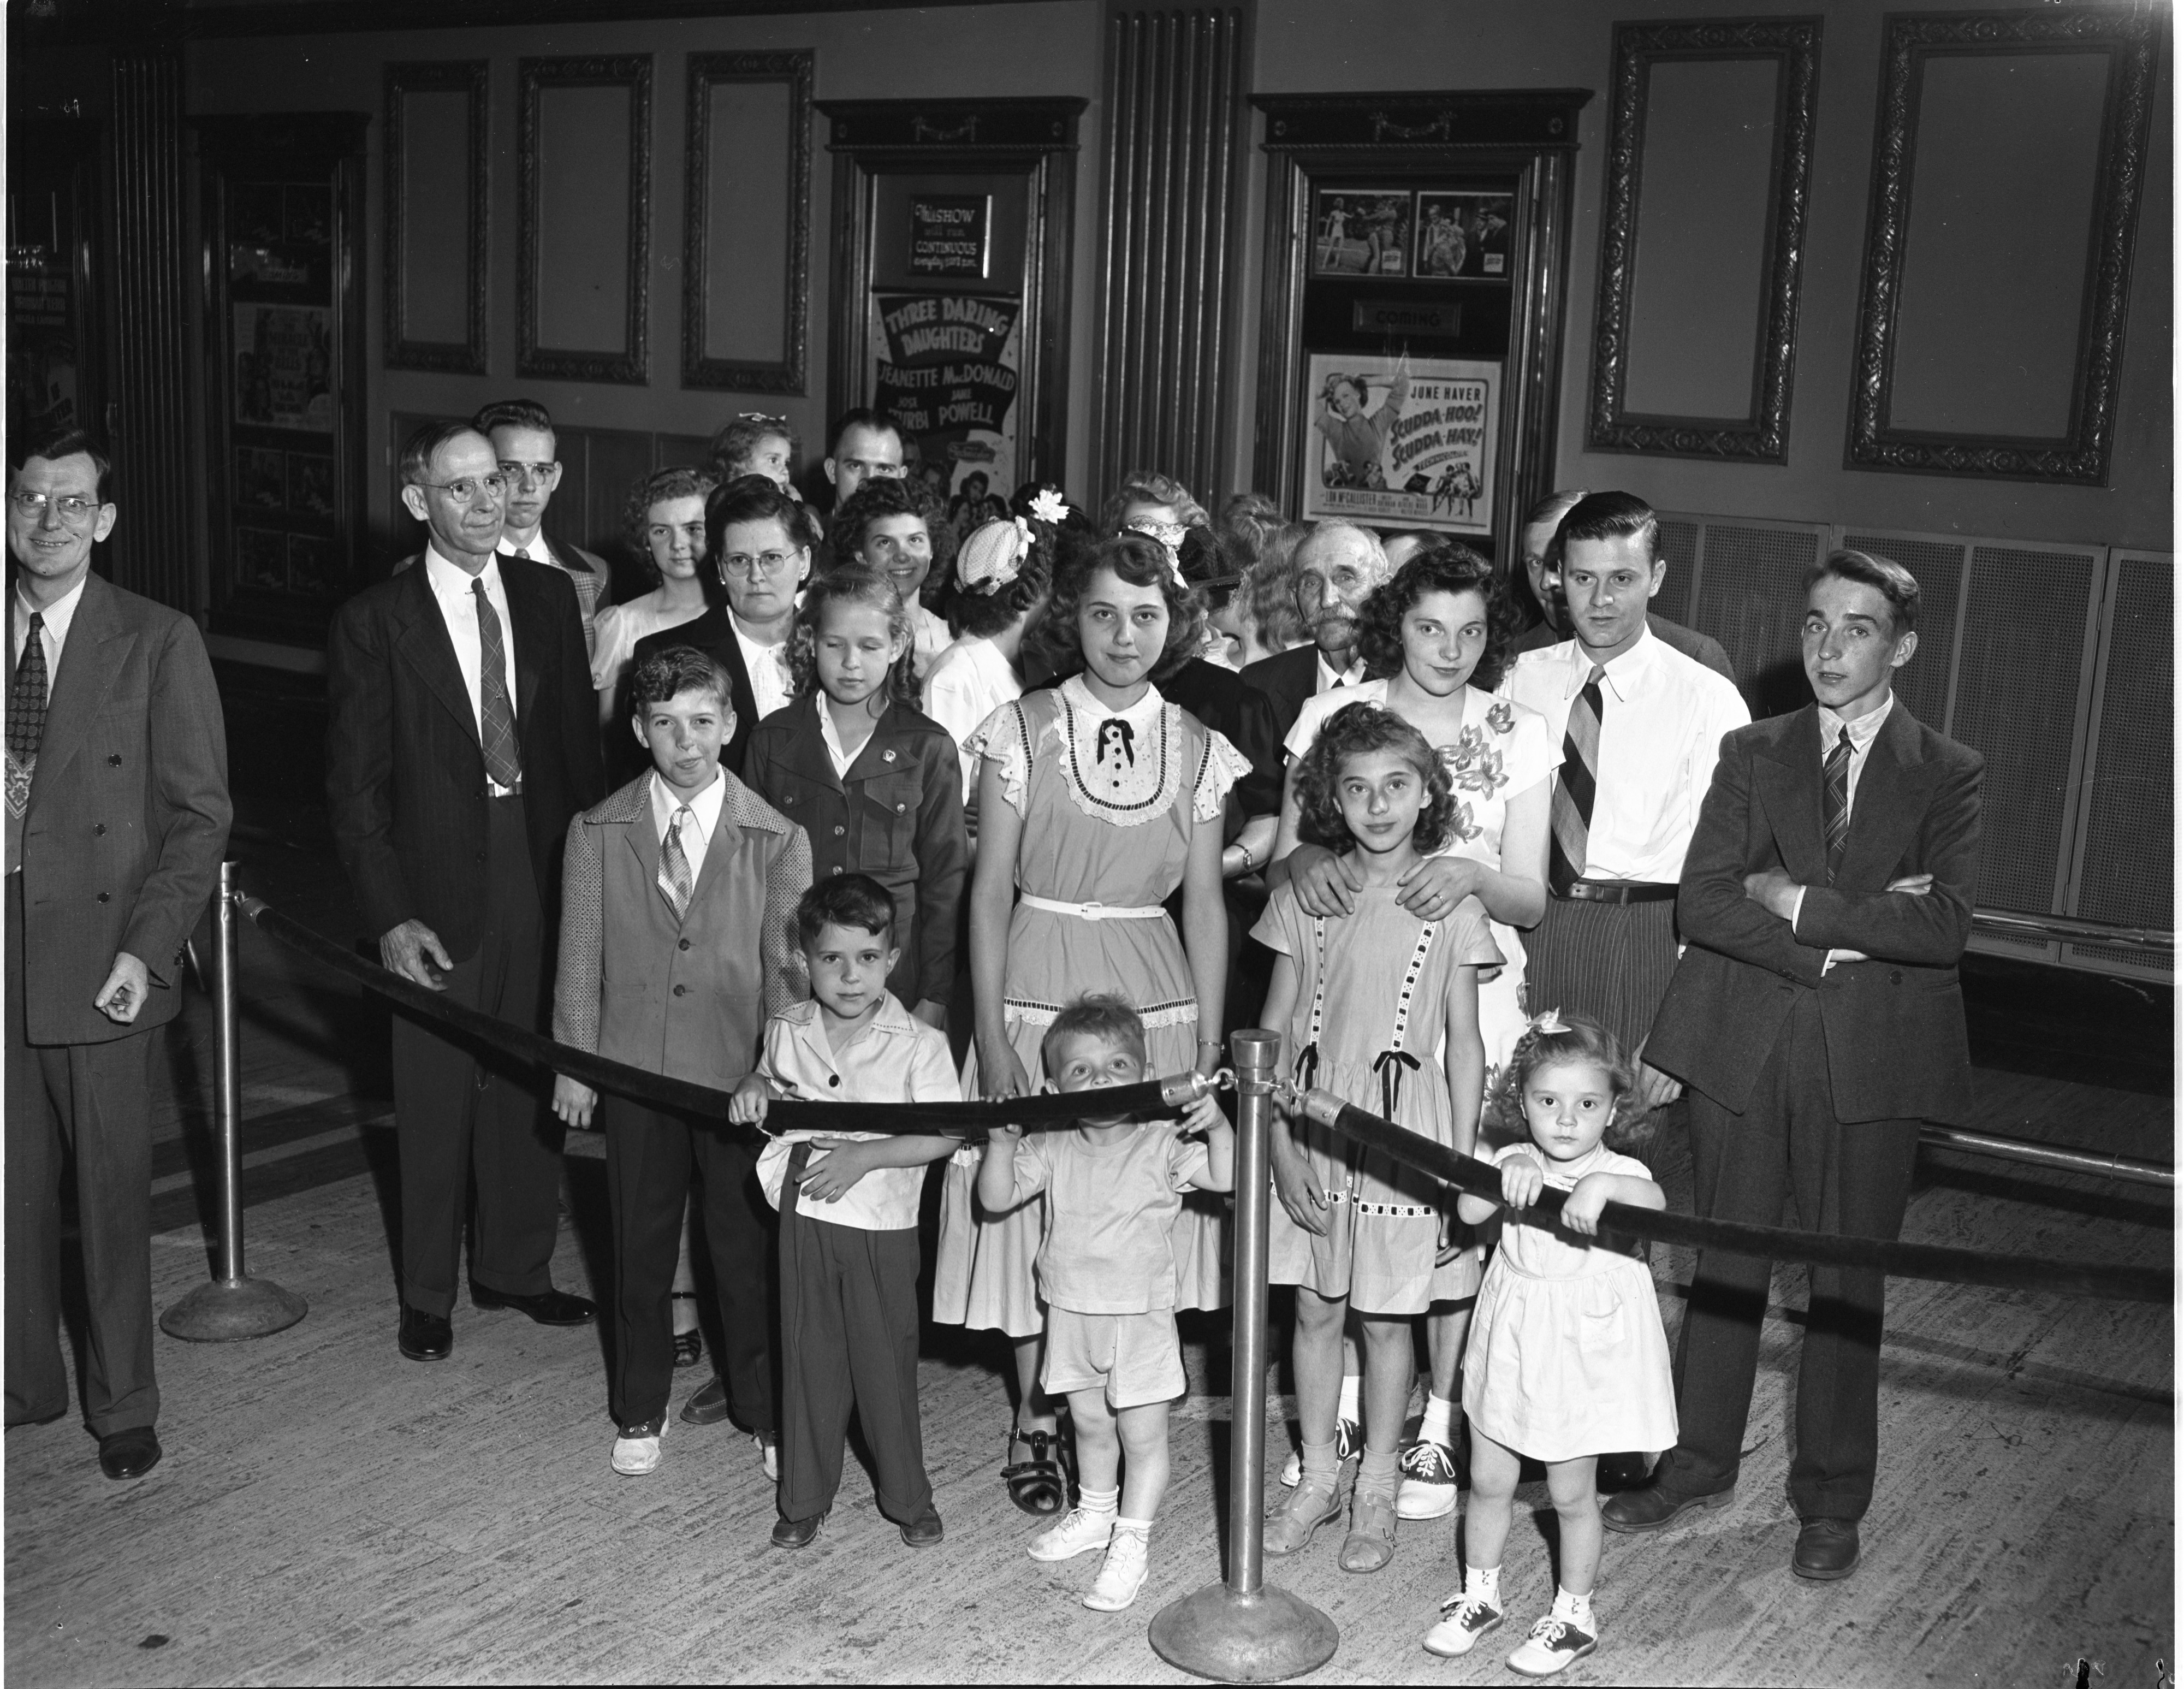 Clarkson F. Warden & Family At The Michigan Theater, June 1948 image